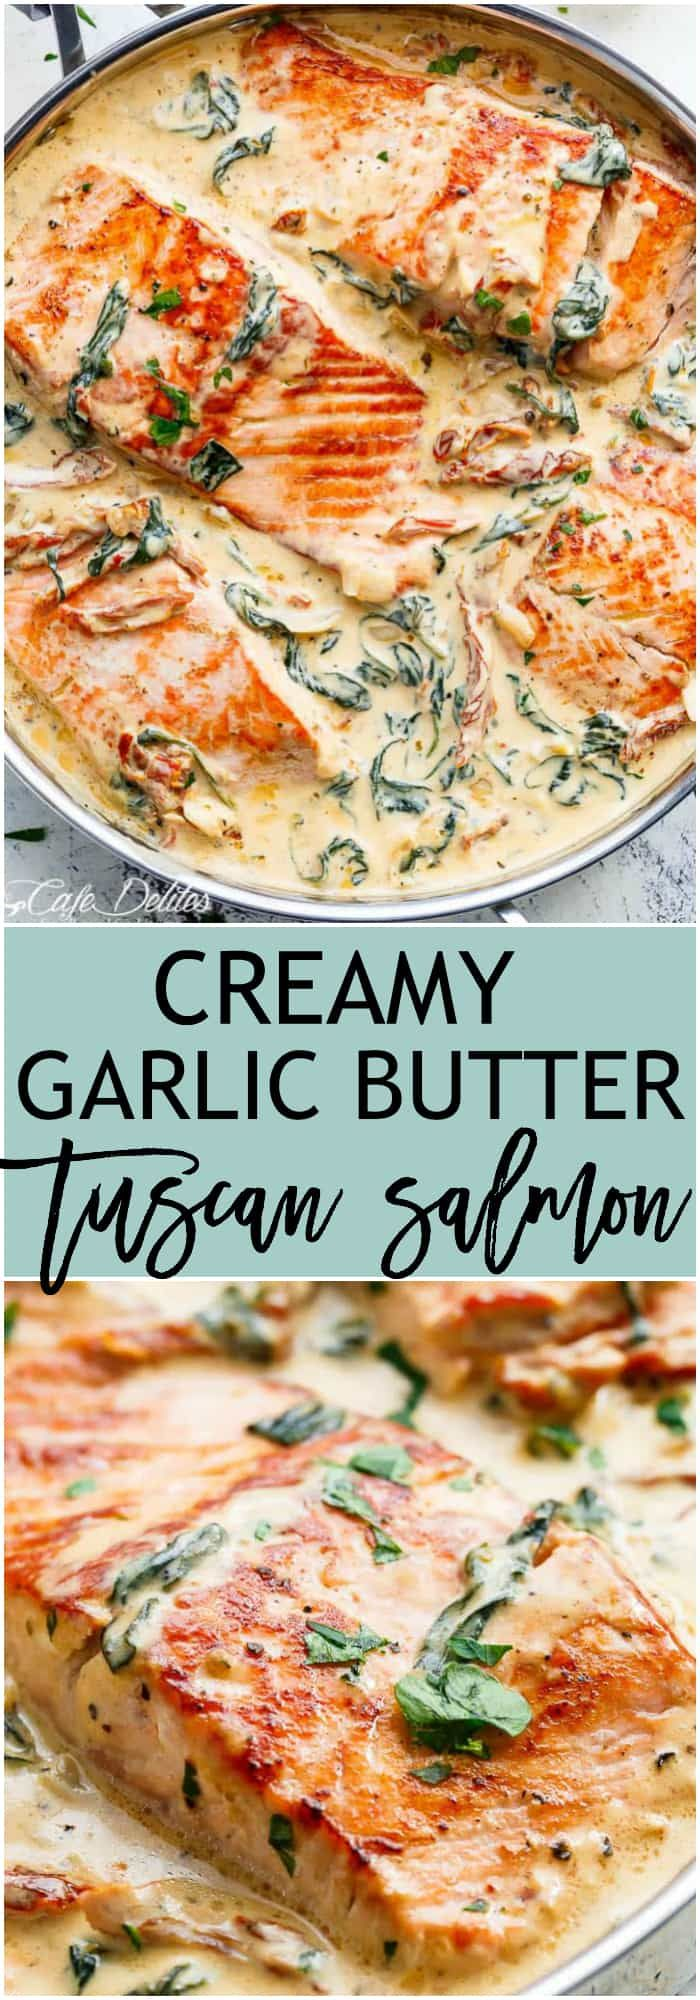 Creamy Garlic Butter Tuscan Salmon (OR TROUT) is such an incredible ...